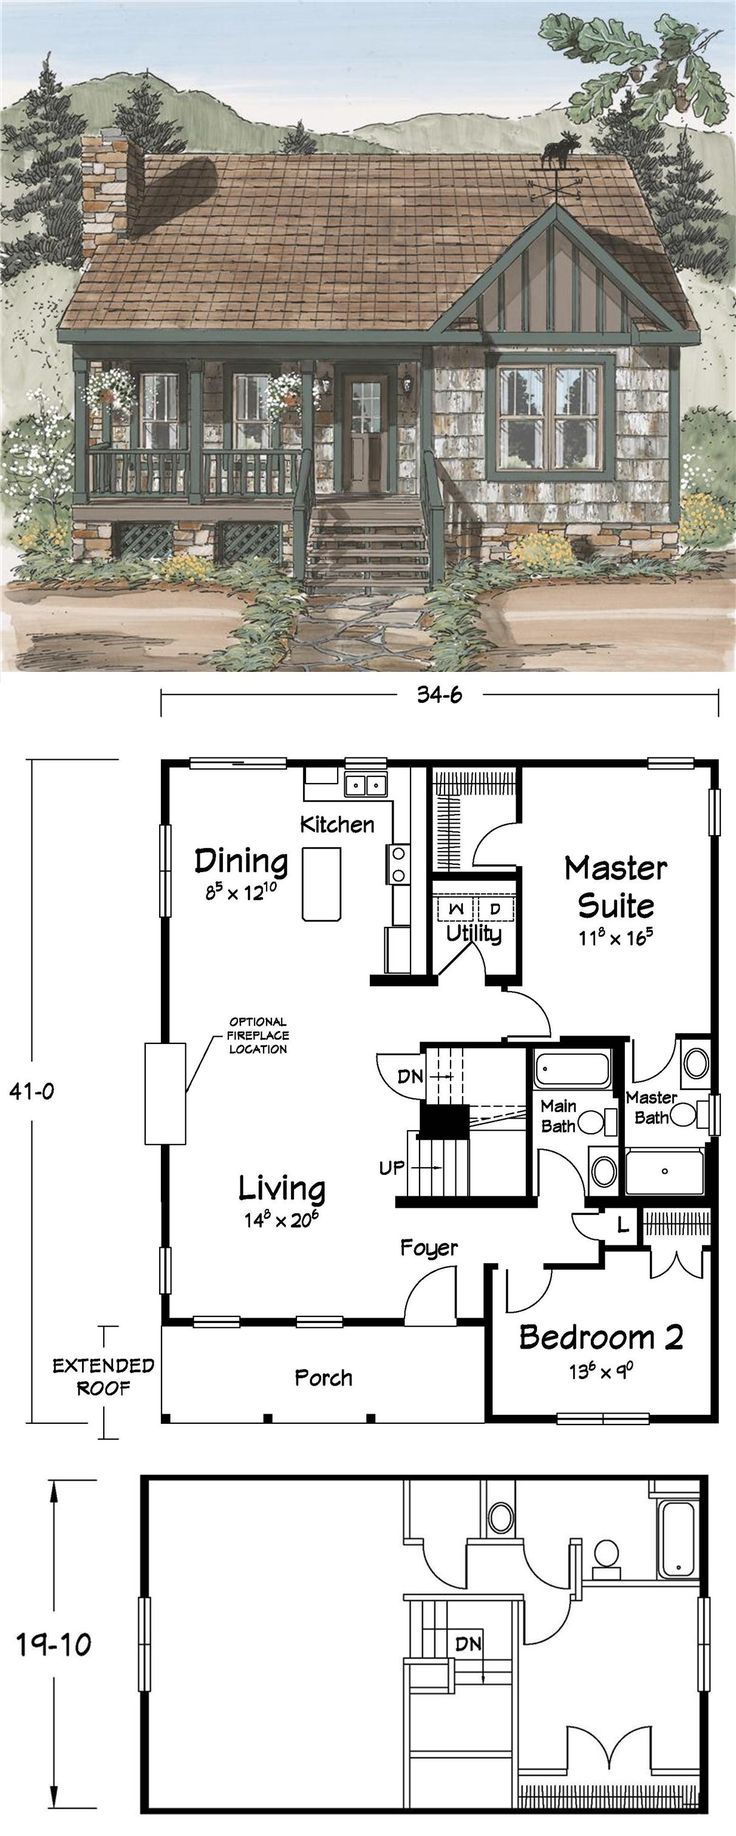 Cute floor plans tiny homes pinterest cabin small for Cabin and cottage plans